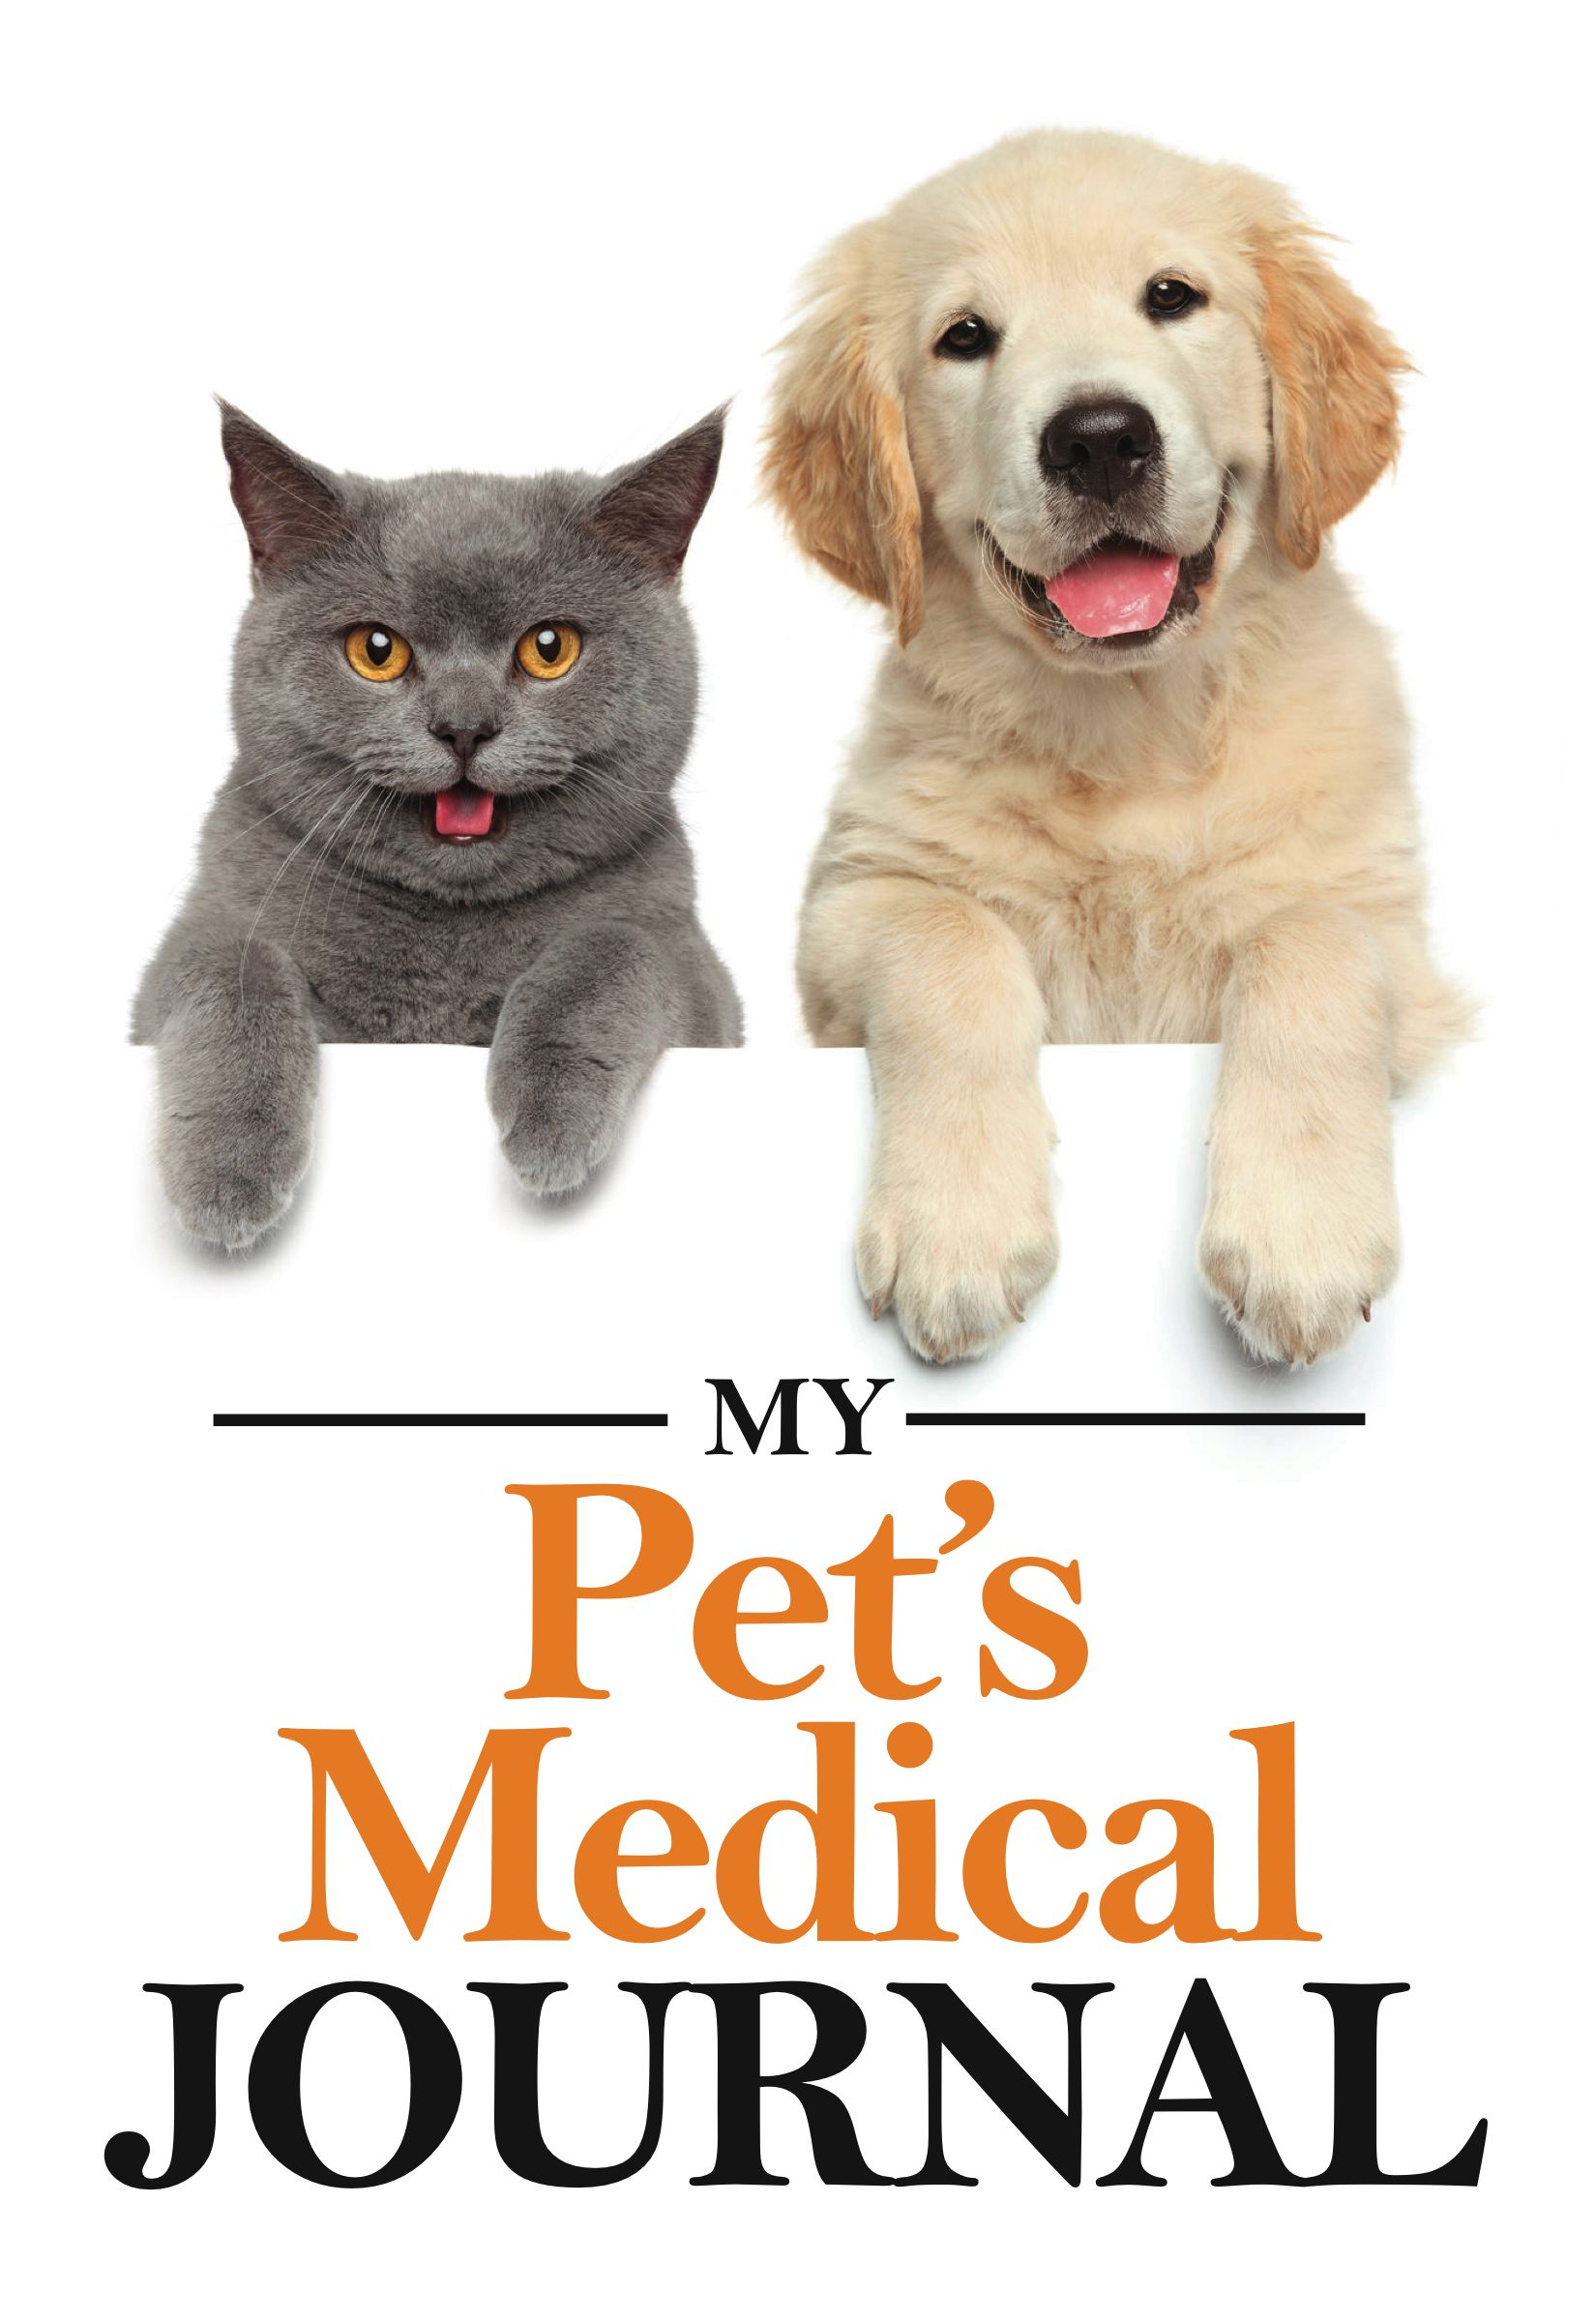 This journal keeps your pet's medical visits organized and easy to keep track of. You can keep record of doctor visits, medications, and treatments. This is handy not only for pet owners, but for those who are caring for your furry friend when you are out of town. Feel confident knowing you have all the information you need about your pet's medical history at your fingertips!